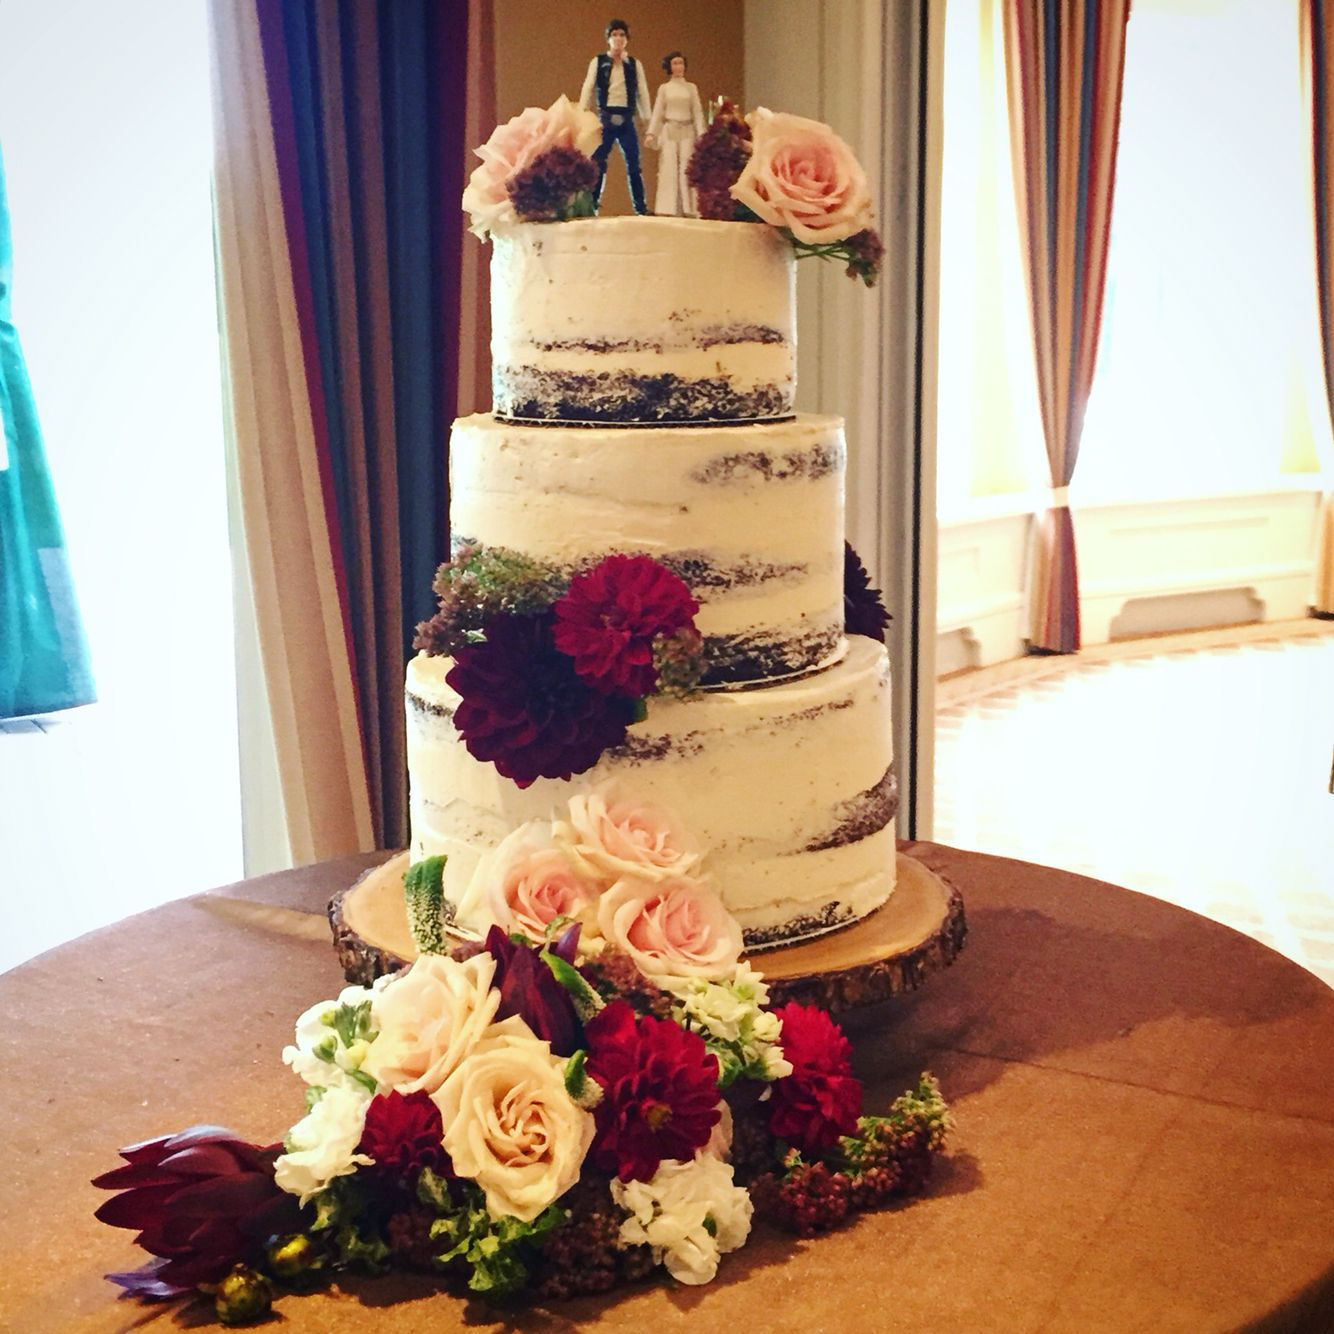 Nearly Naked Chocolate Fudge Wedding Cake With Real Floral Details - Fudge Wedding Cake